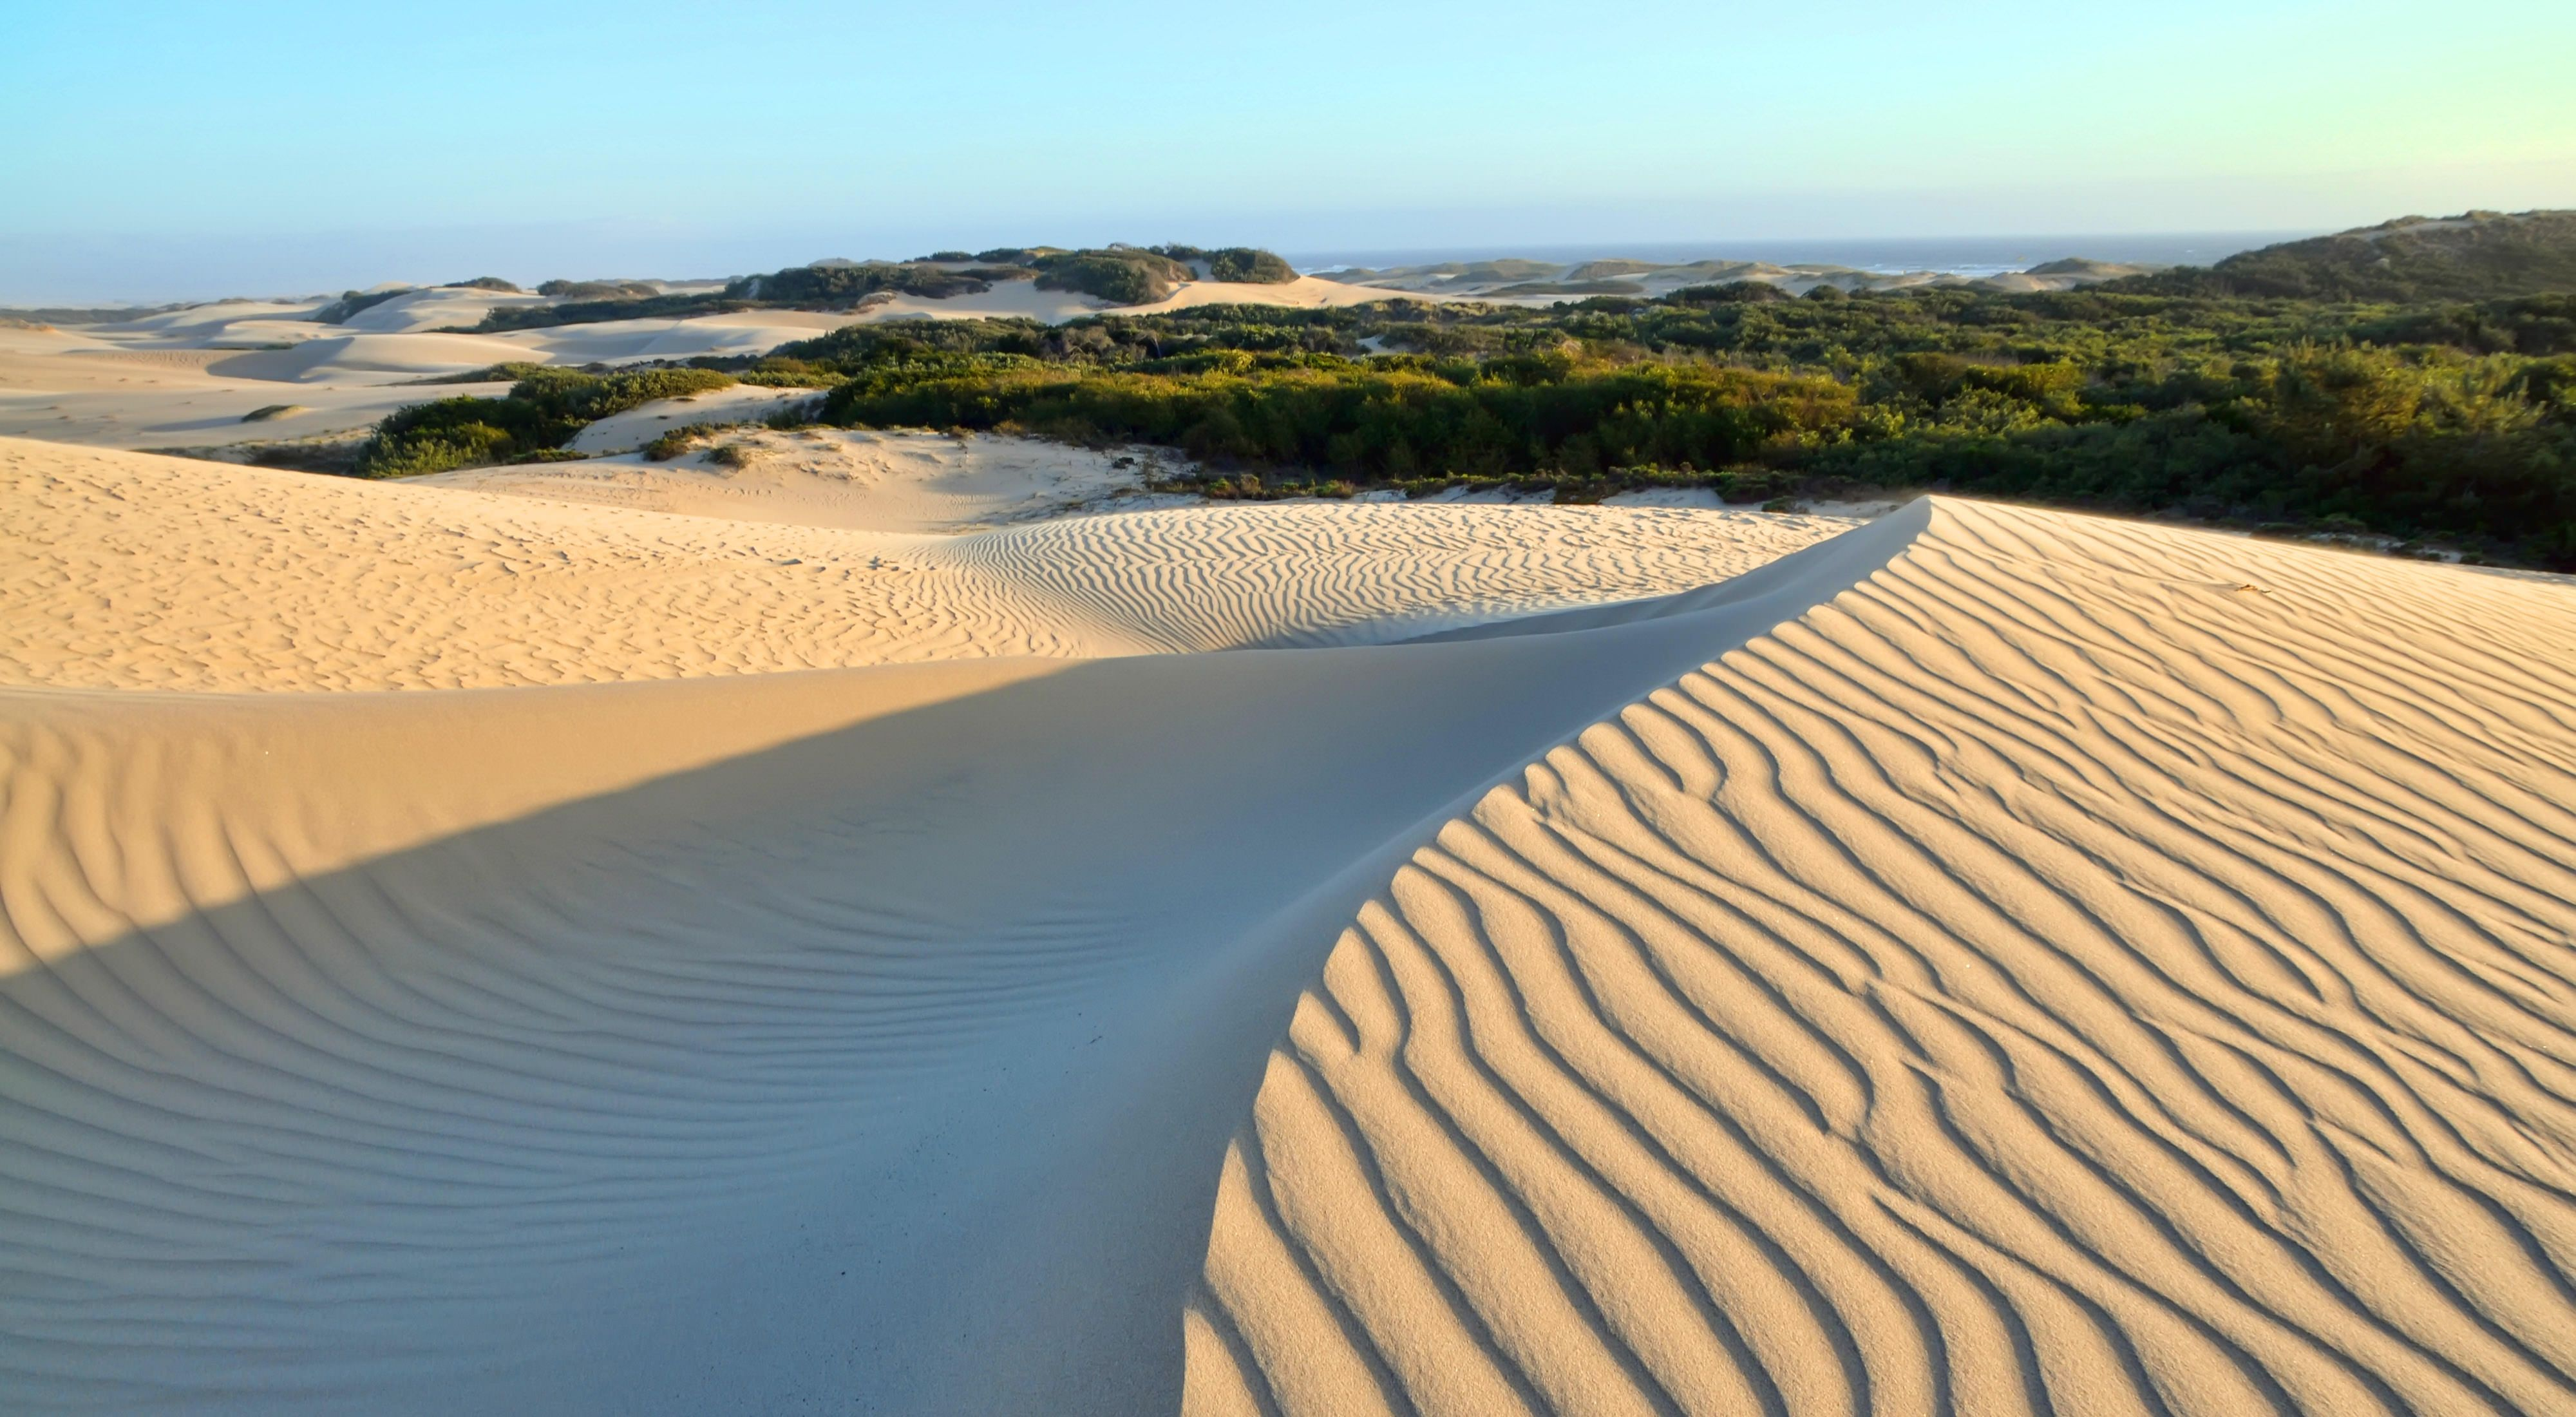 Guadalupe-Nipomo Dunes on the central coast of California